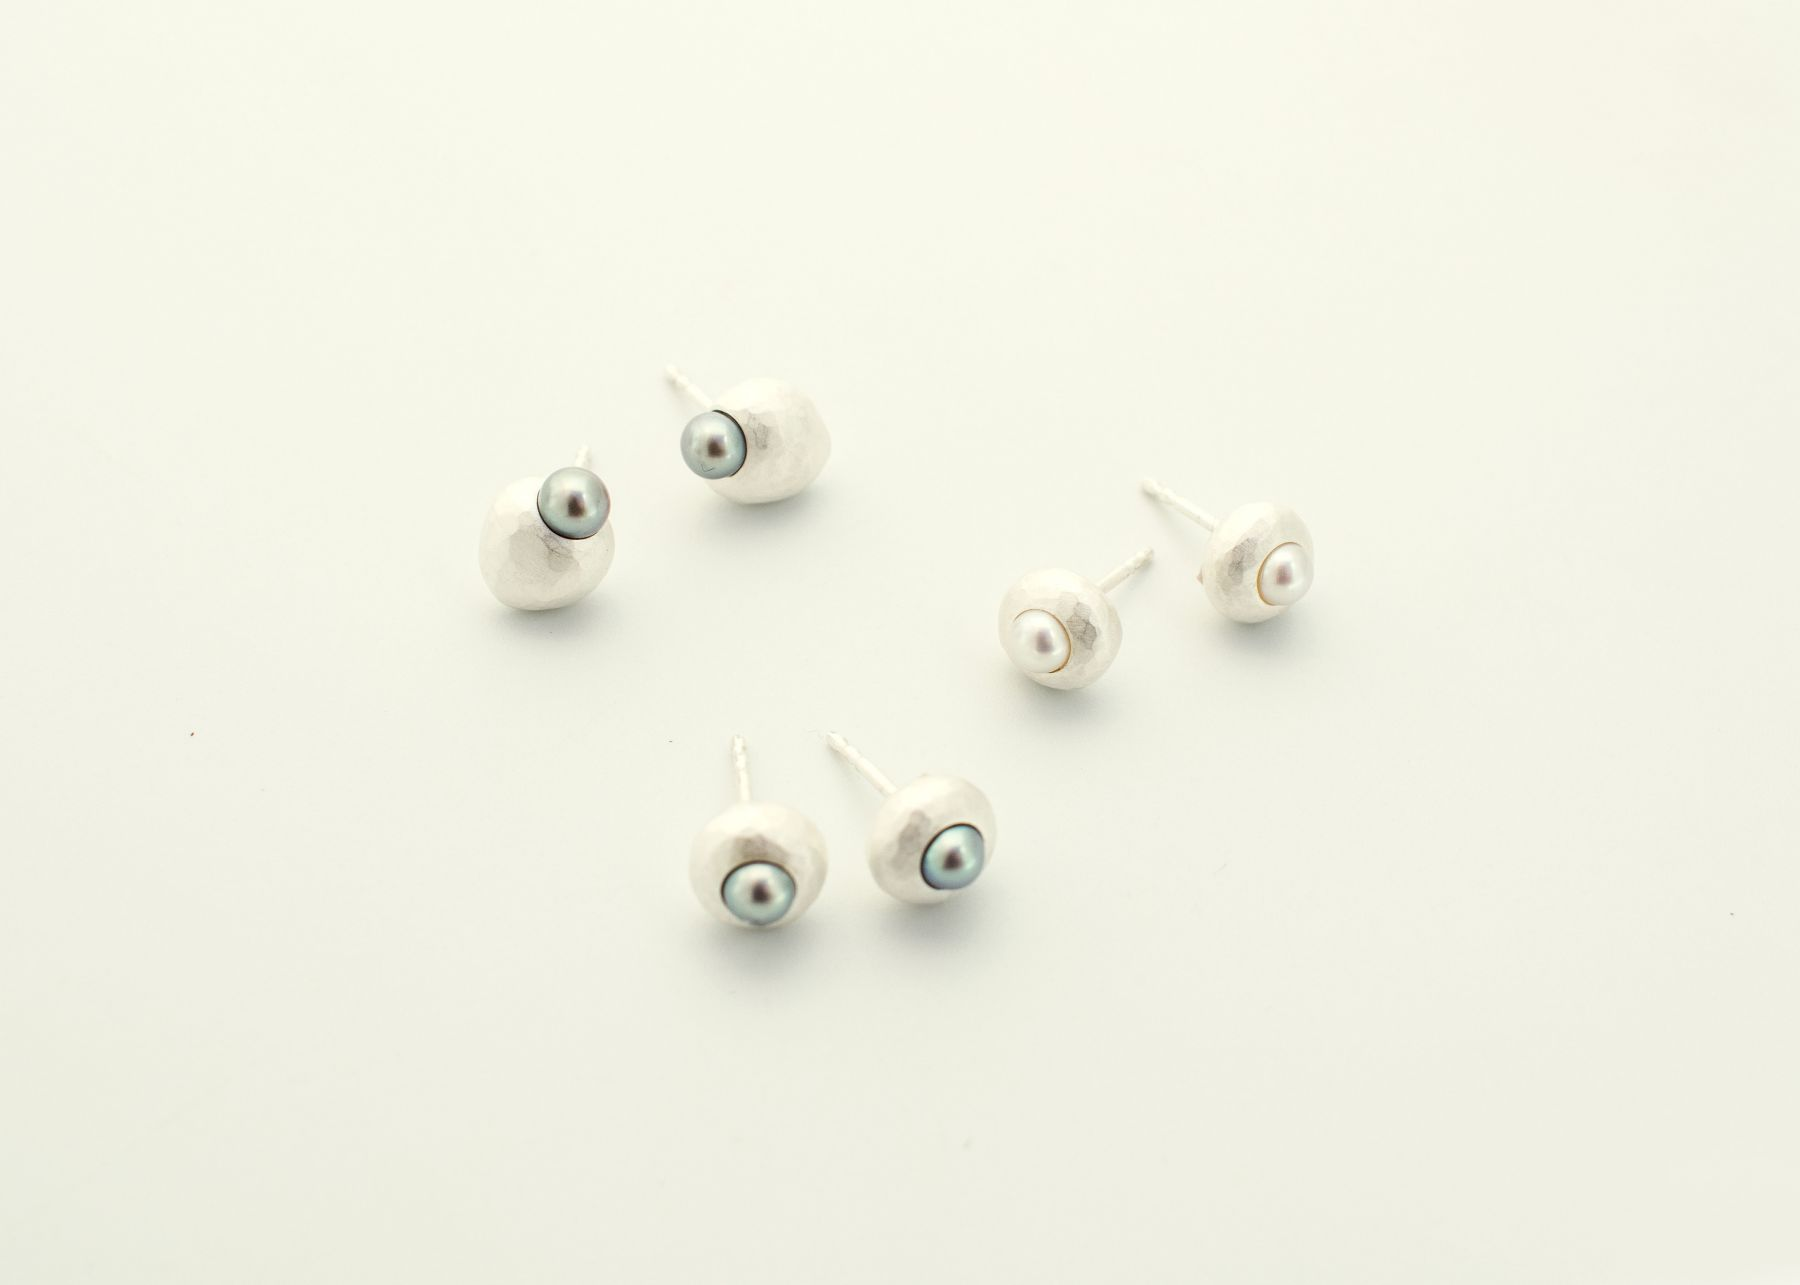 Ute Eitzenhöffer, earrings, silver, pearls